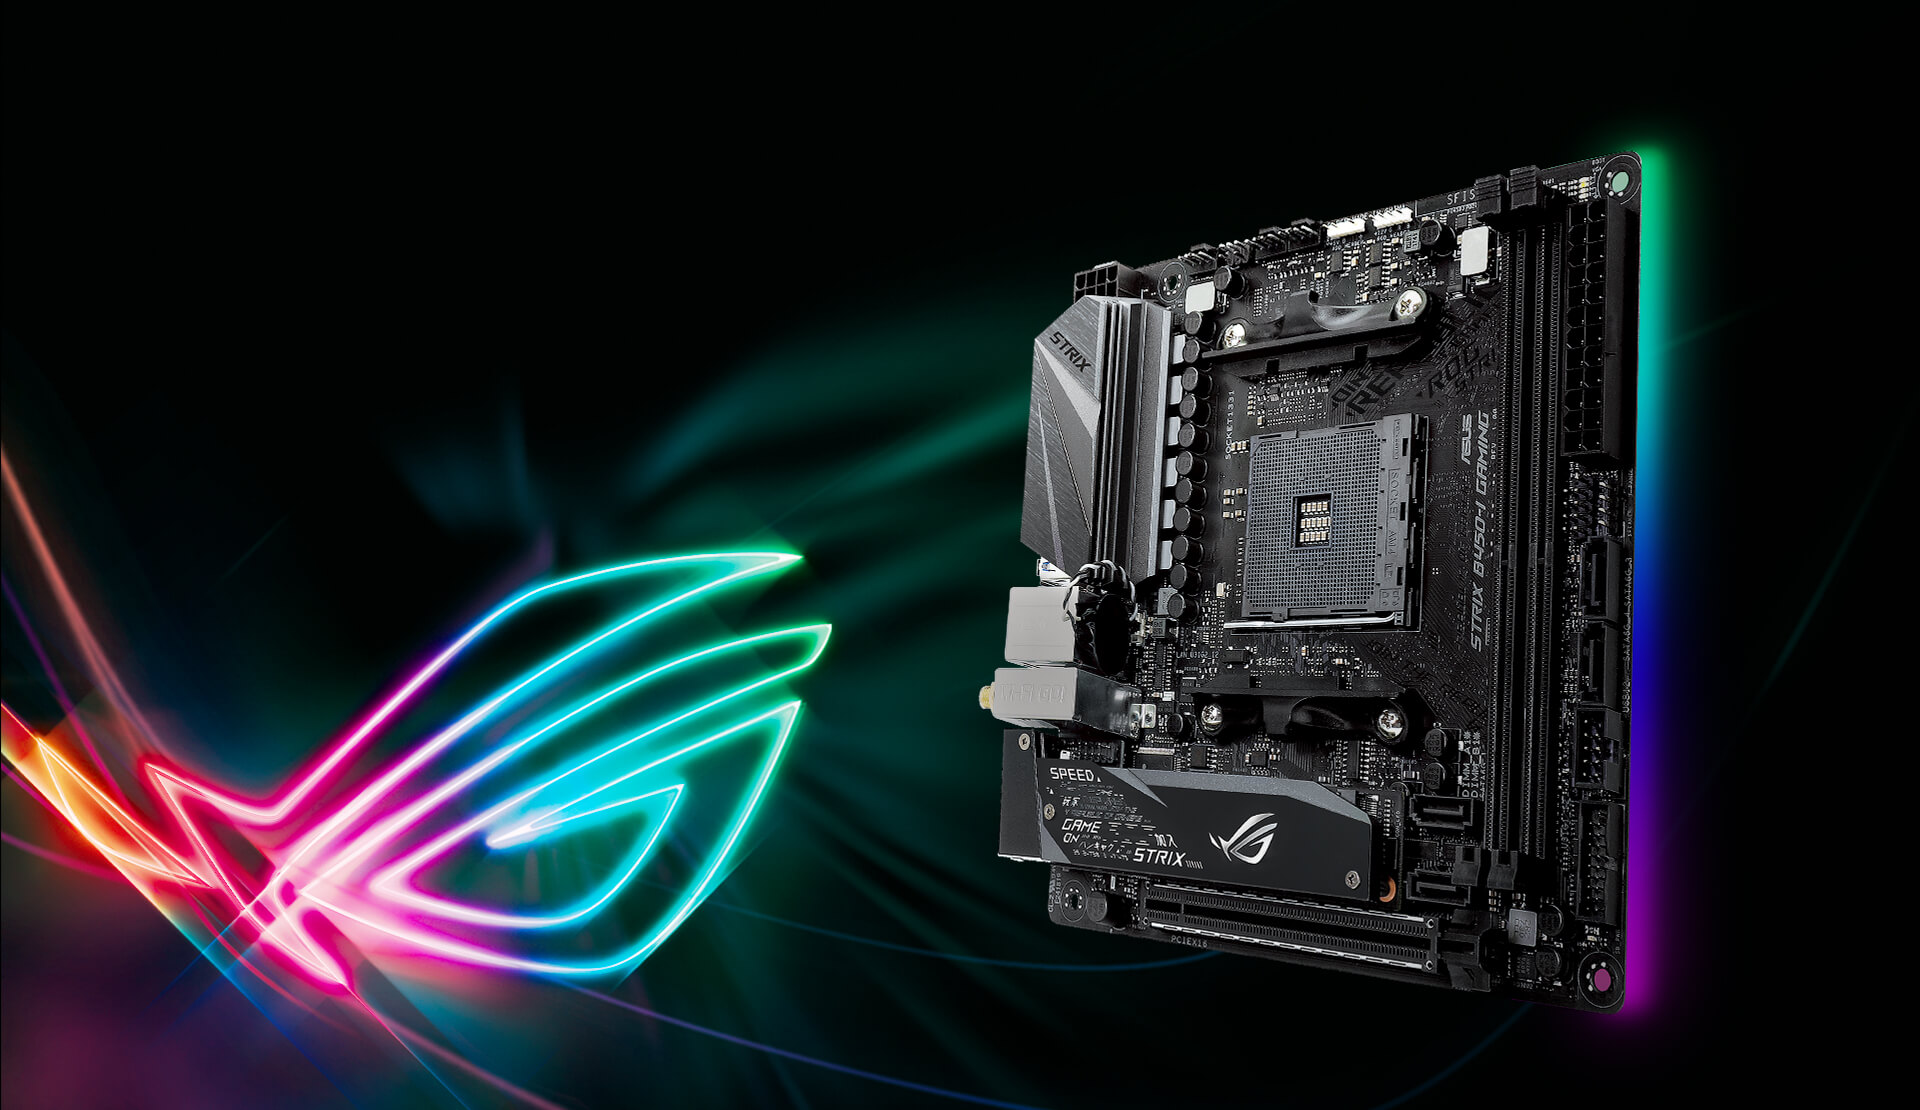 ASUS ROG STRIX B450-I GAMING | ROG - Republic Of Gamers | ASUS USA